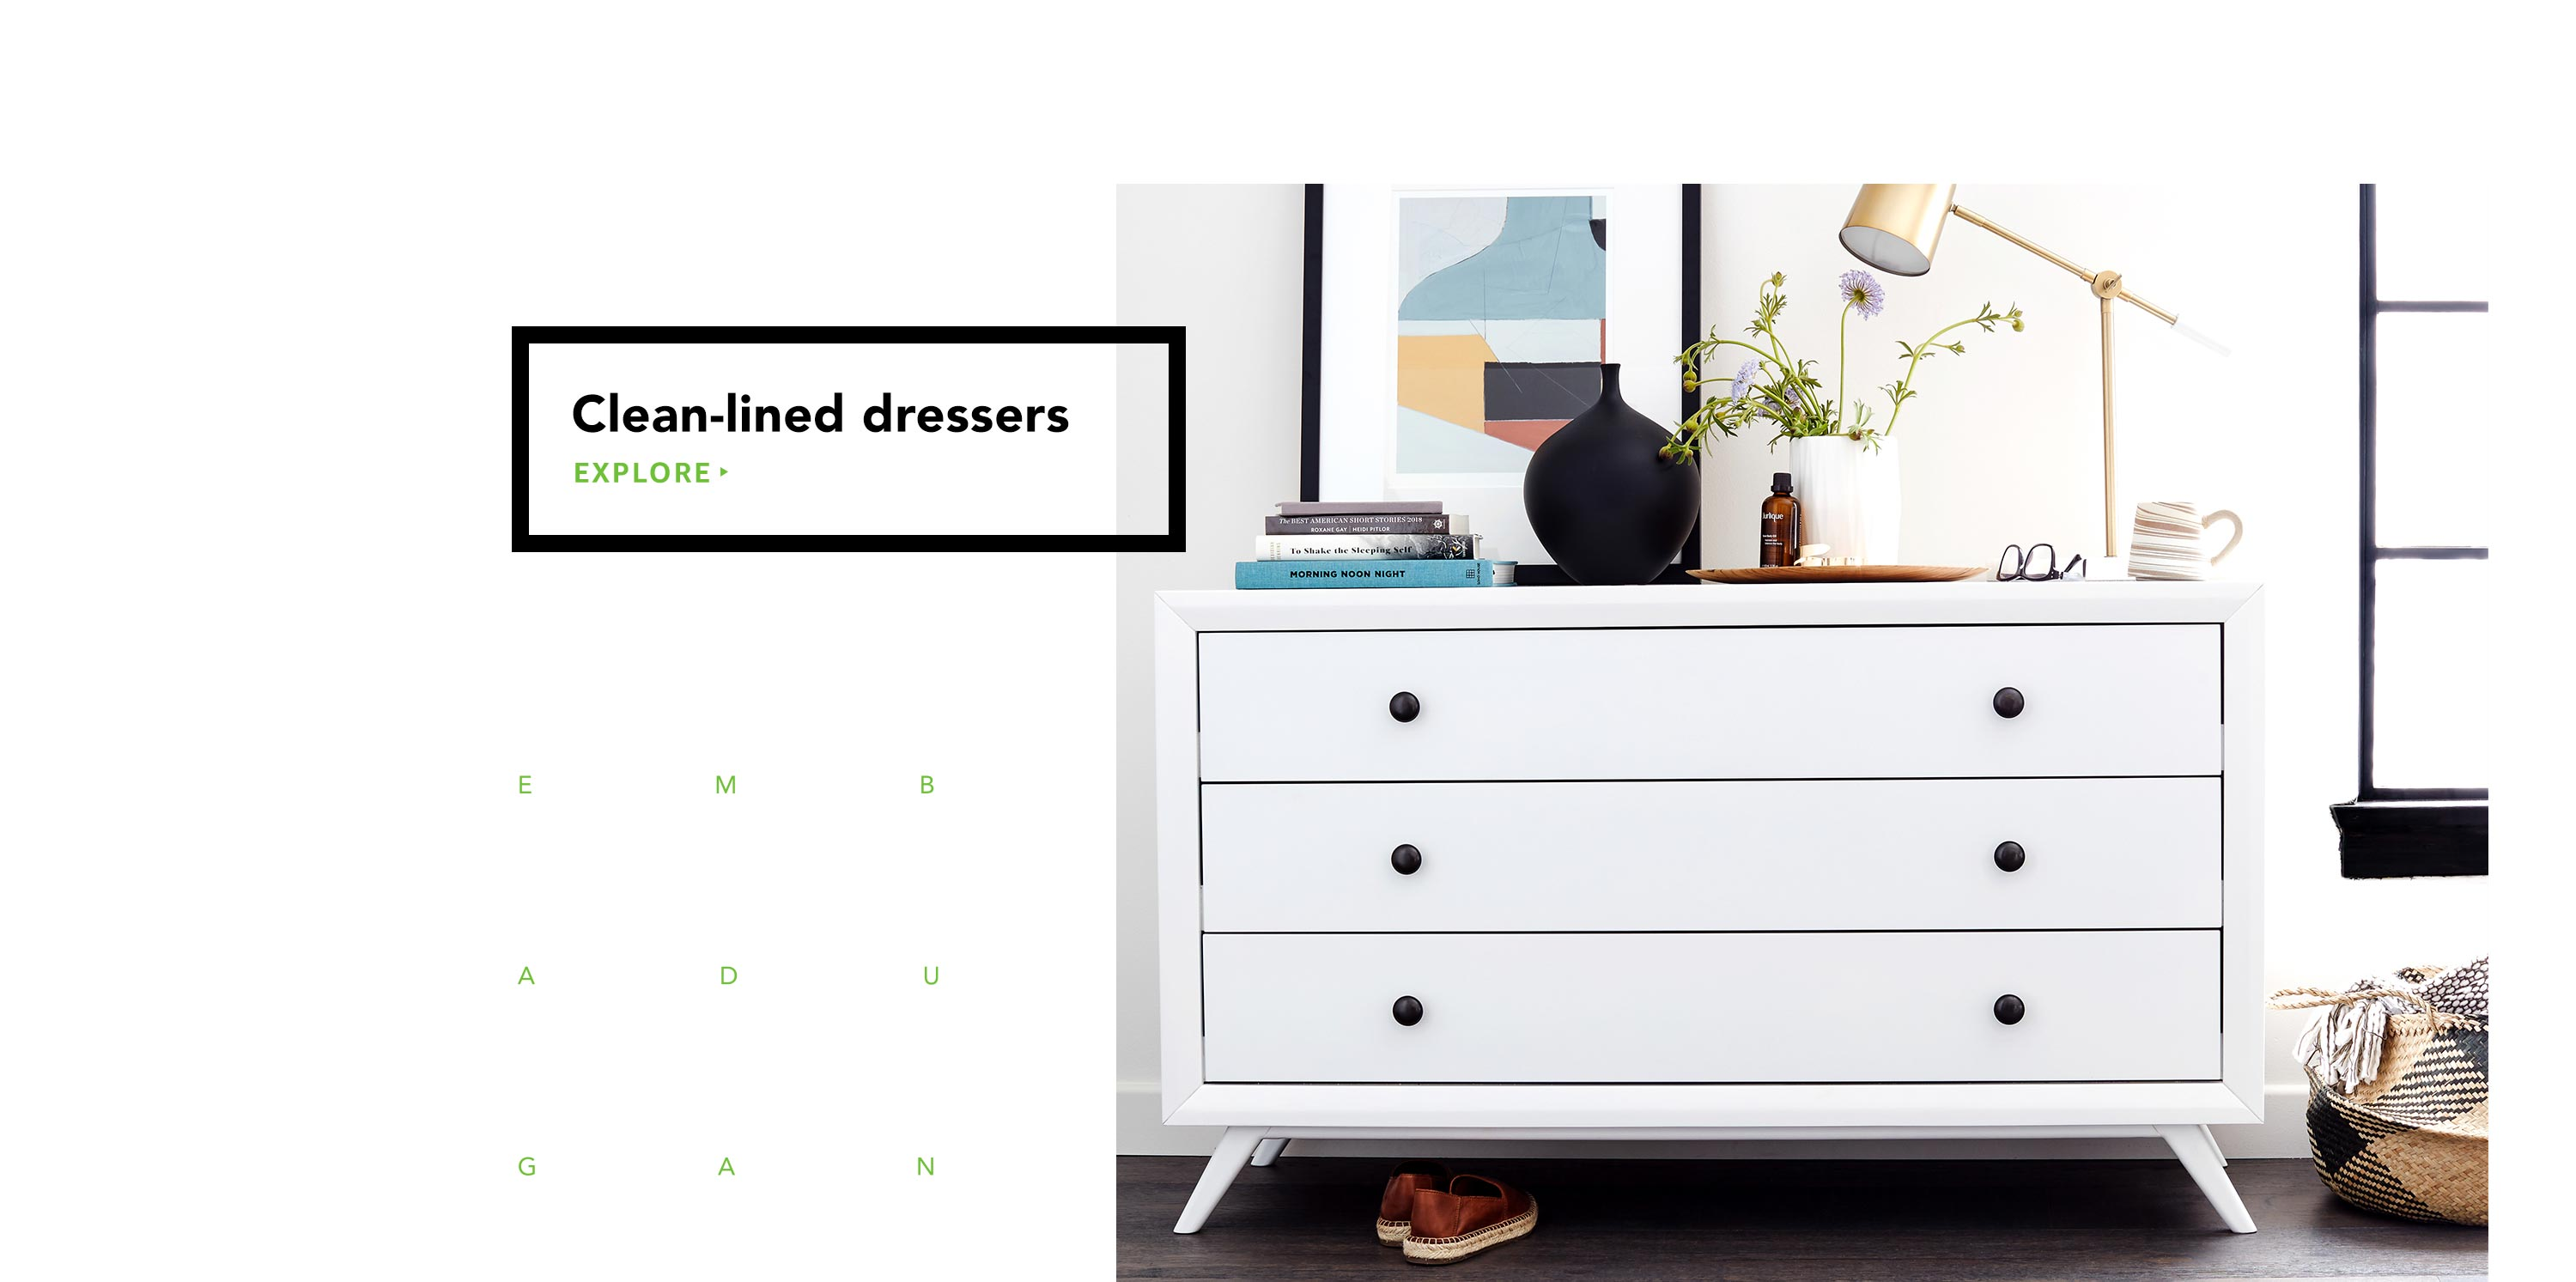 Clean-lined dressers